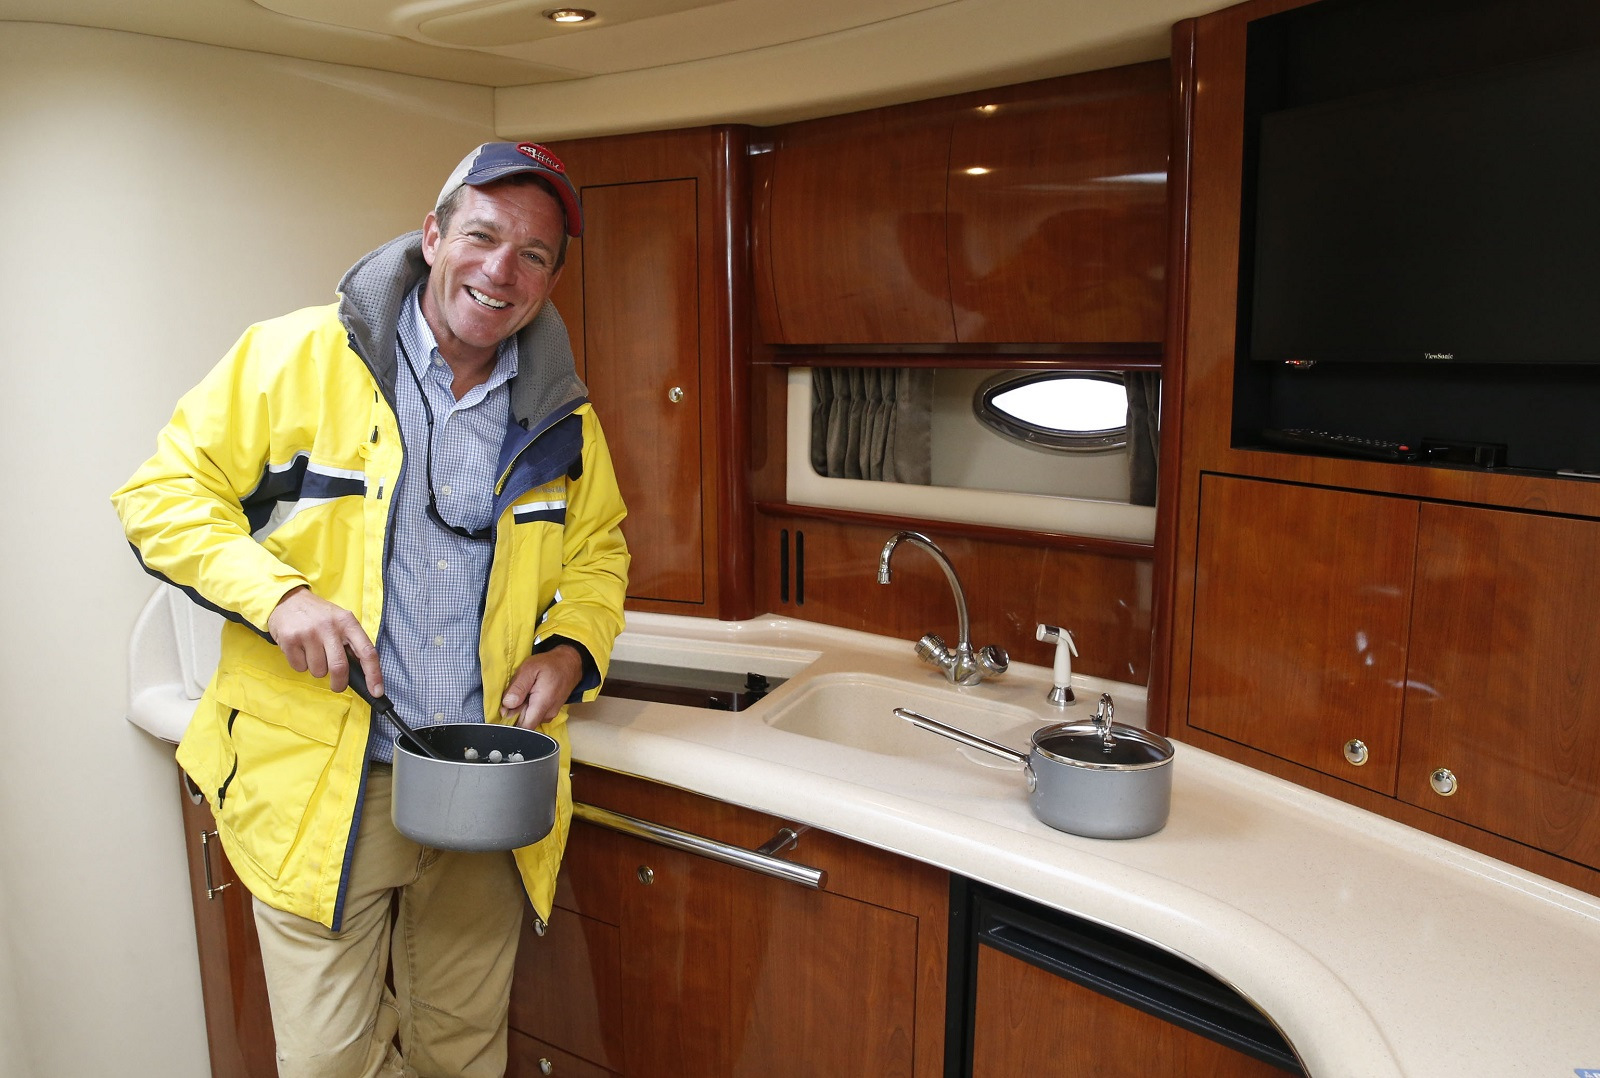 Curtin hangs out in the yacht's kitchen. (Robert Kirkham/Buffalo News)